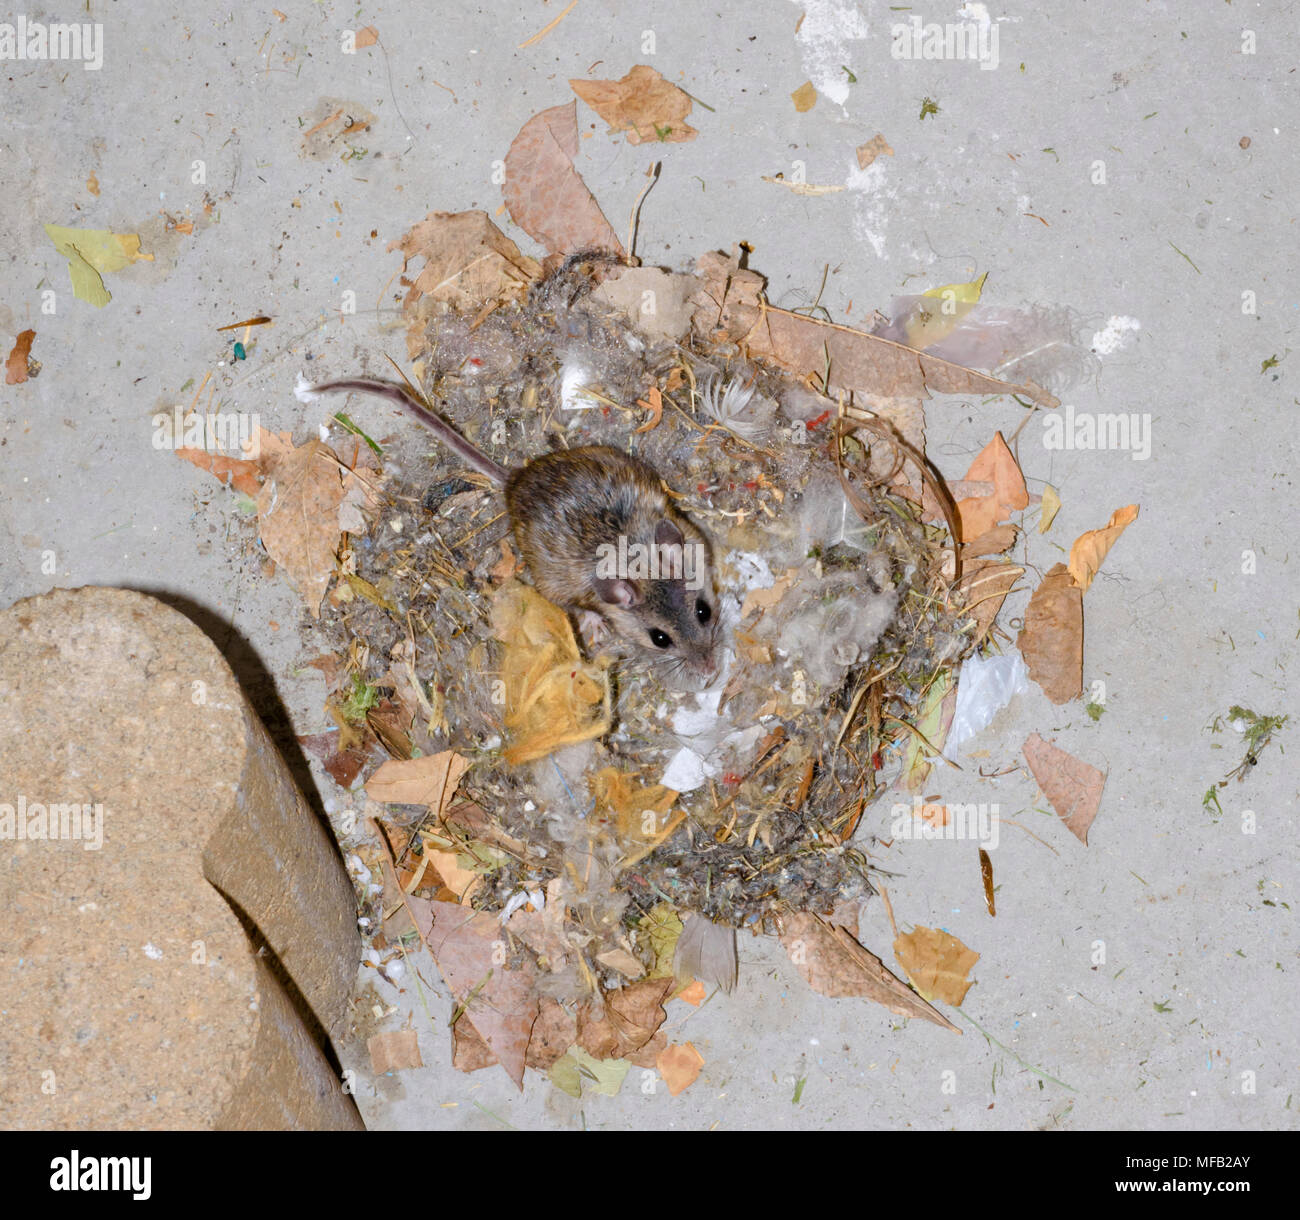 Deer Mouse and nest made from available materials- leaves, trash and bits of twigs and debris. Taken above concrete floor of auto garage, Colorado US. - Stock Image